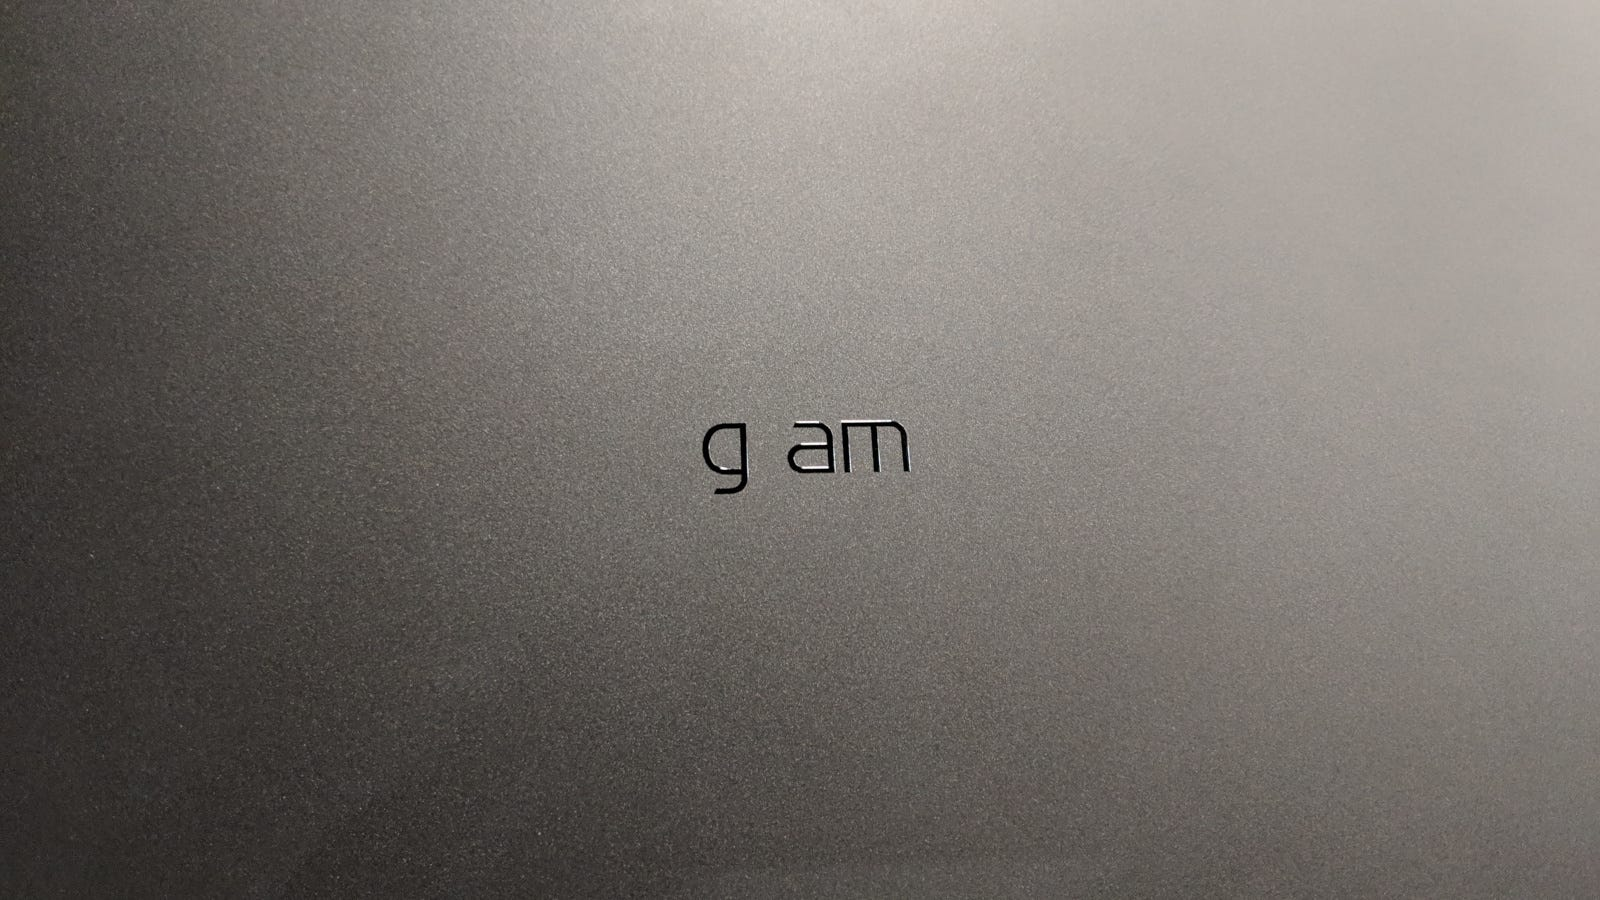 """The """"r"""" fell off...somewhere. Behold the LG gam!"""